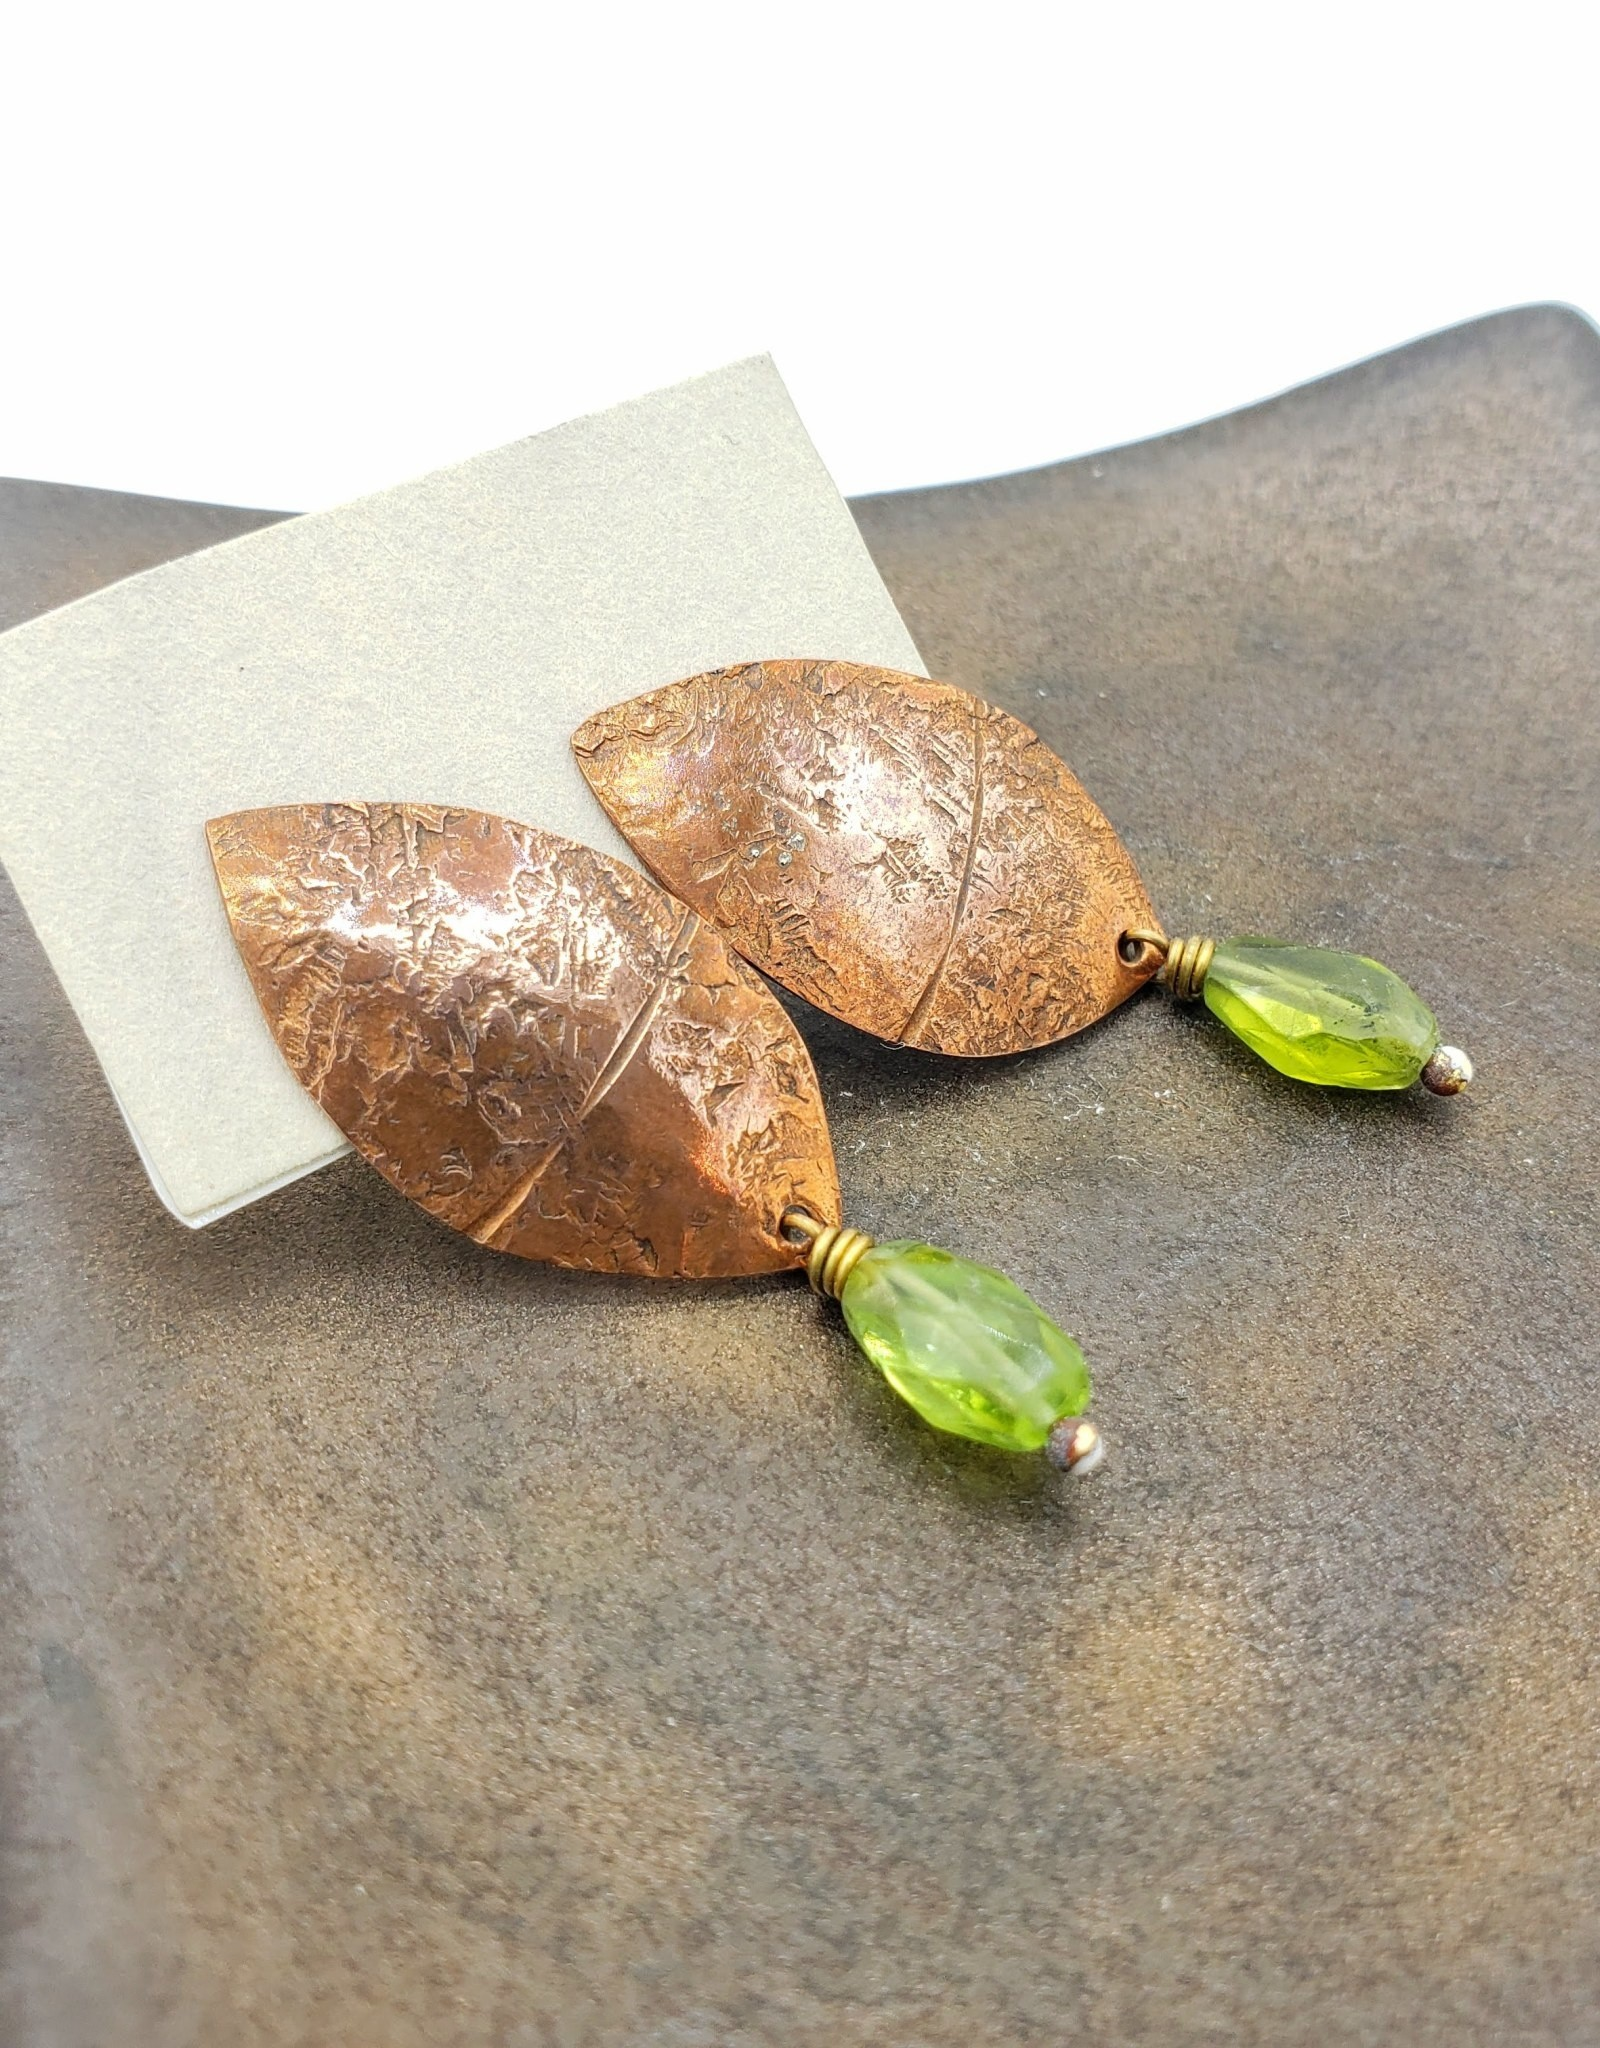 From the Reliquary Copper Petalos Post Earrings with Green Garnet - From the Reliquary